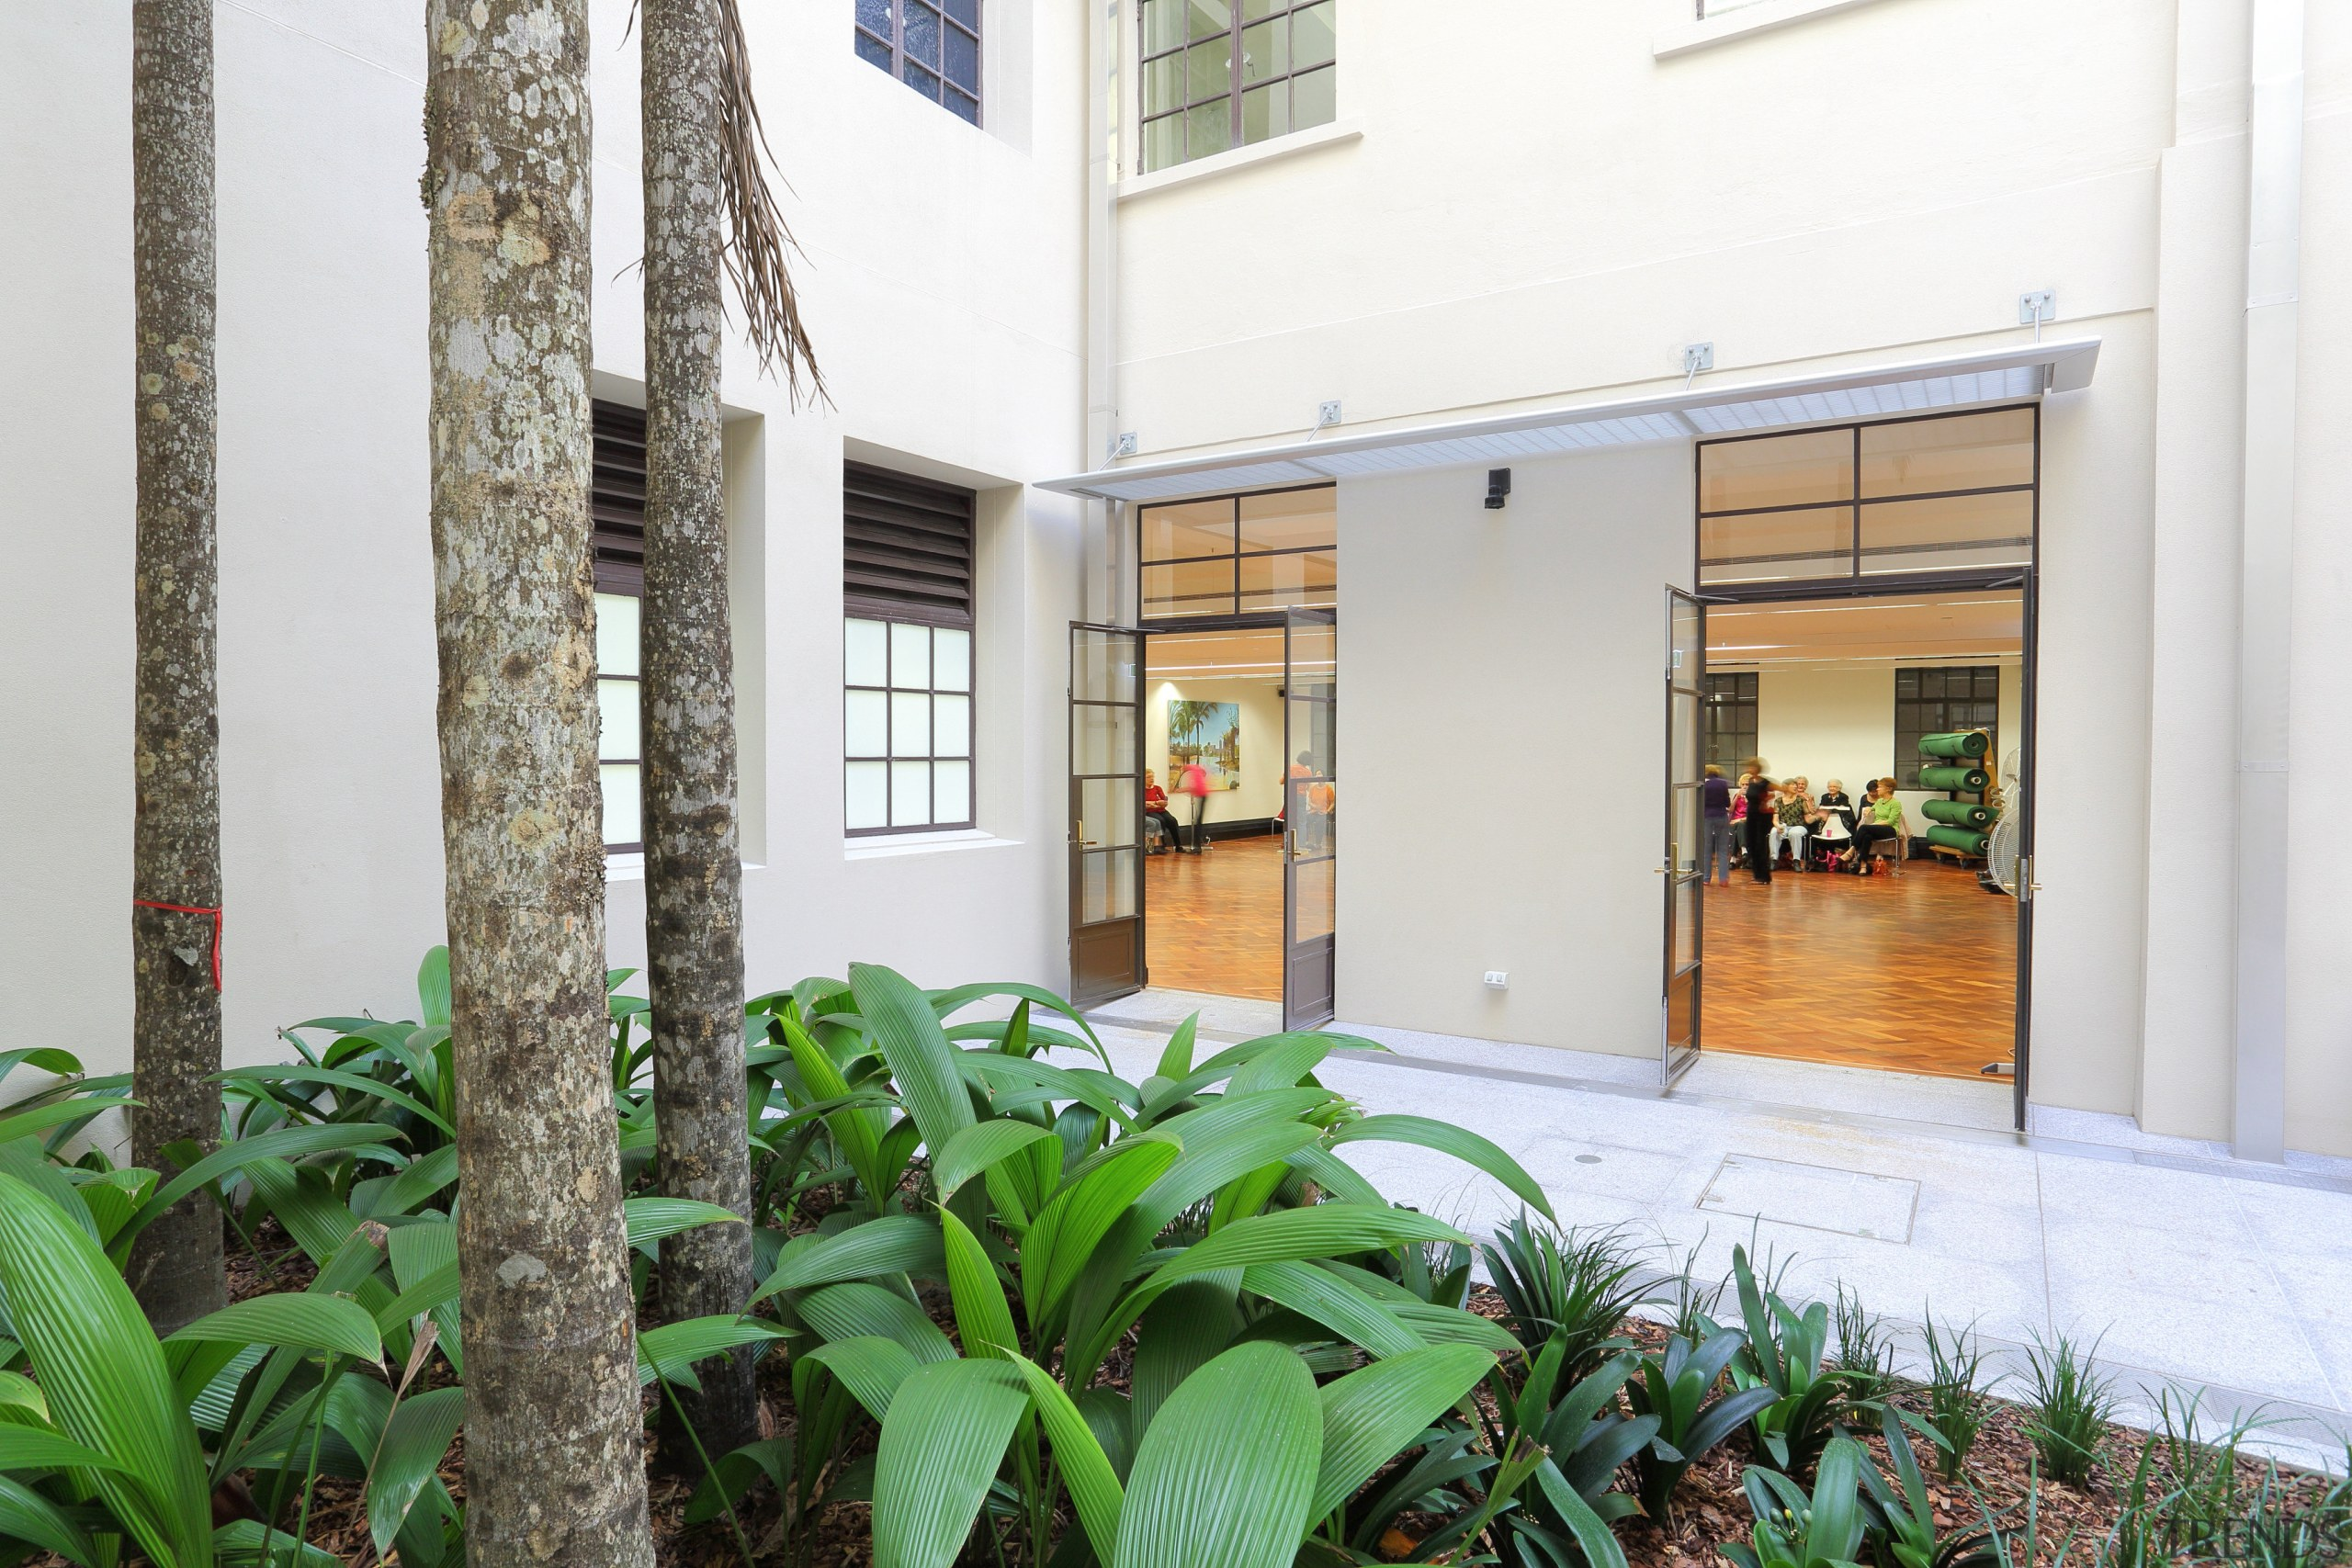 As part of the renovation and update of apartment, courtyard, facade, house, property, real estate, window, white